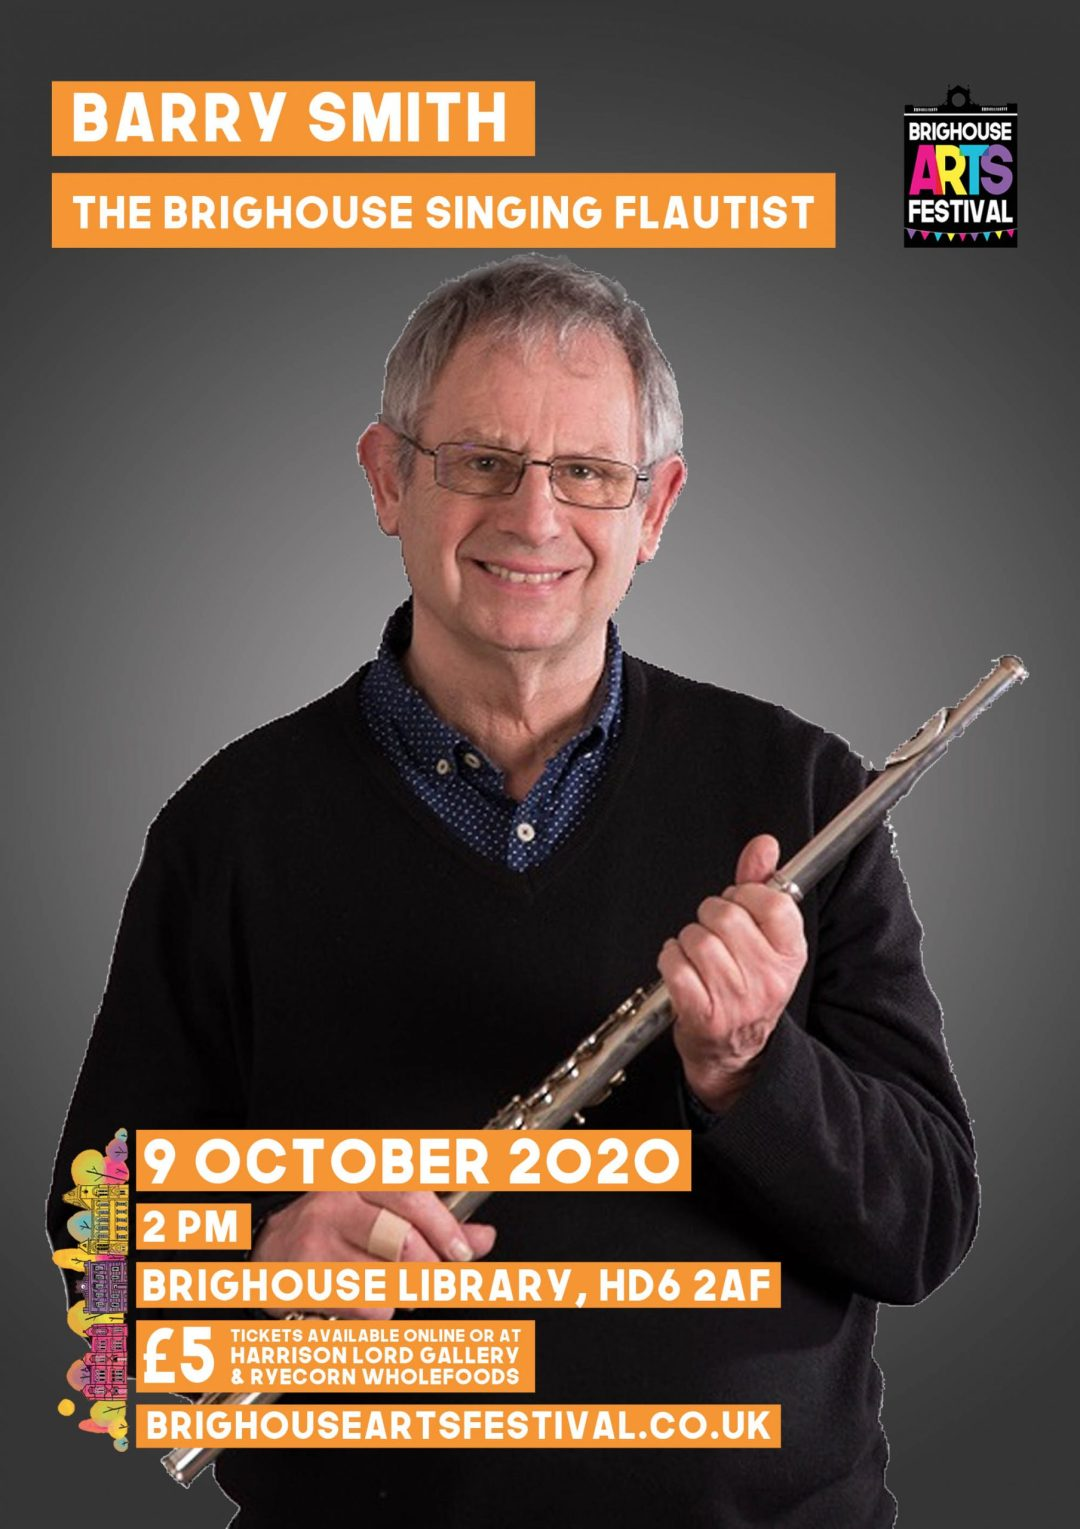 Barry Smith - The Brighouse Flautist - Brighouse Arts Festival